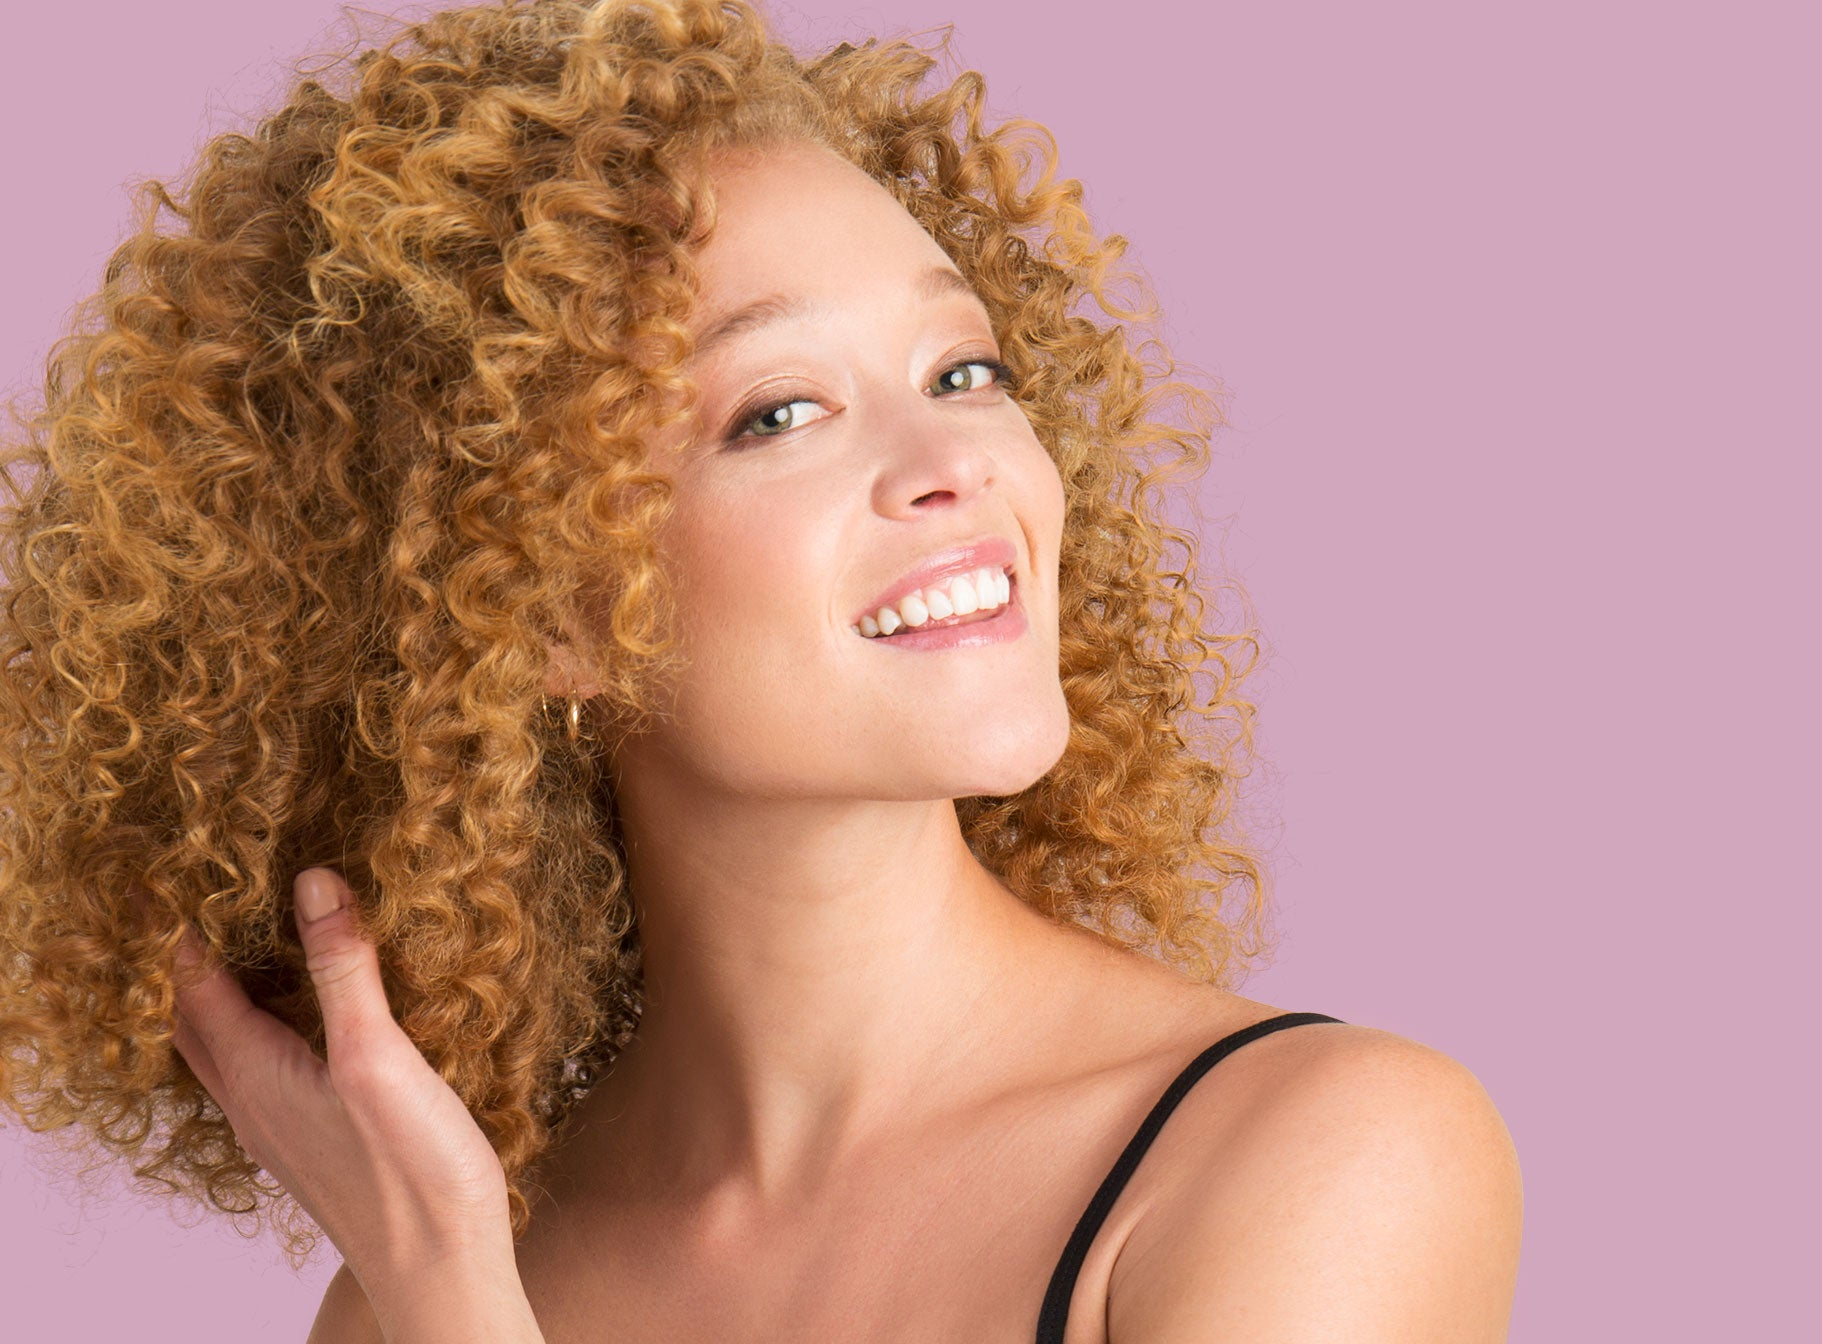 Girl with Curly Hair after applying the Xtava products